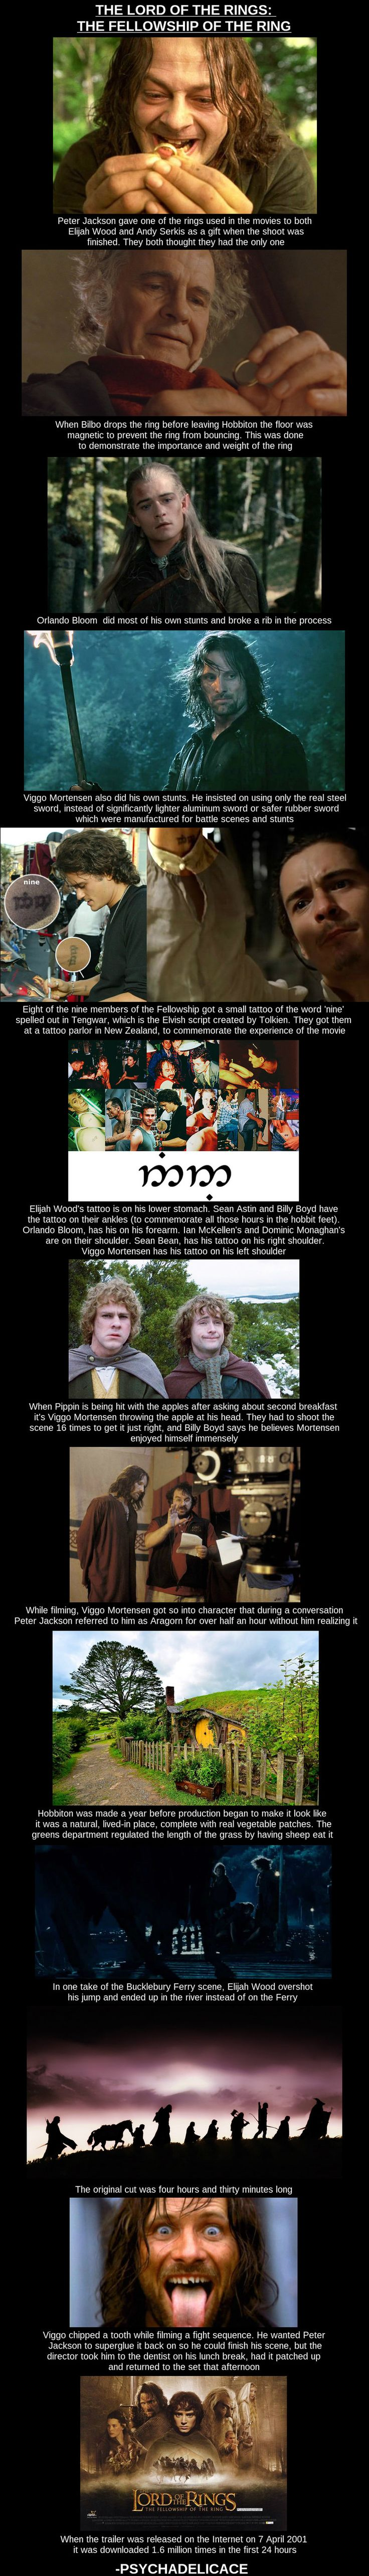 The Fellowship of the Ring behind the scenes facts.